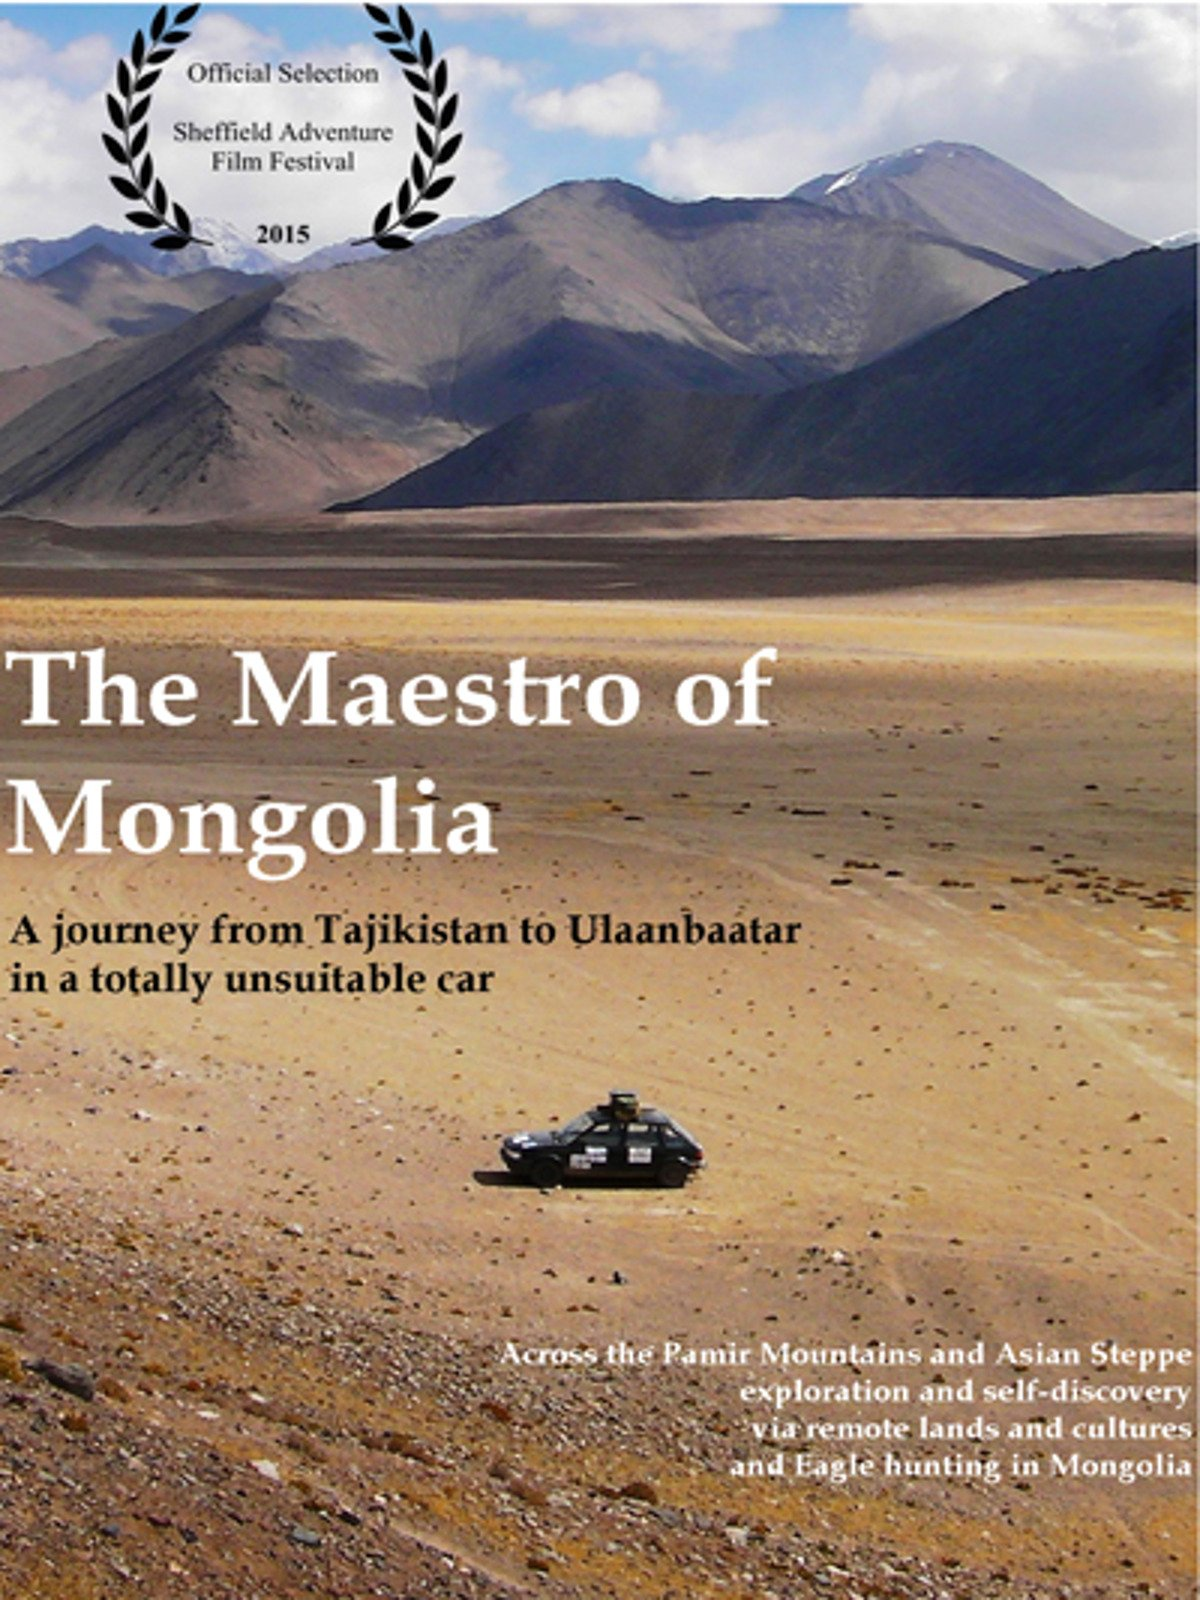 The Maestro of Mongolia